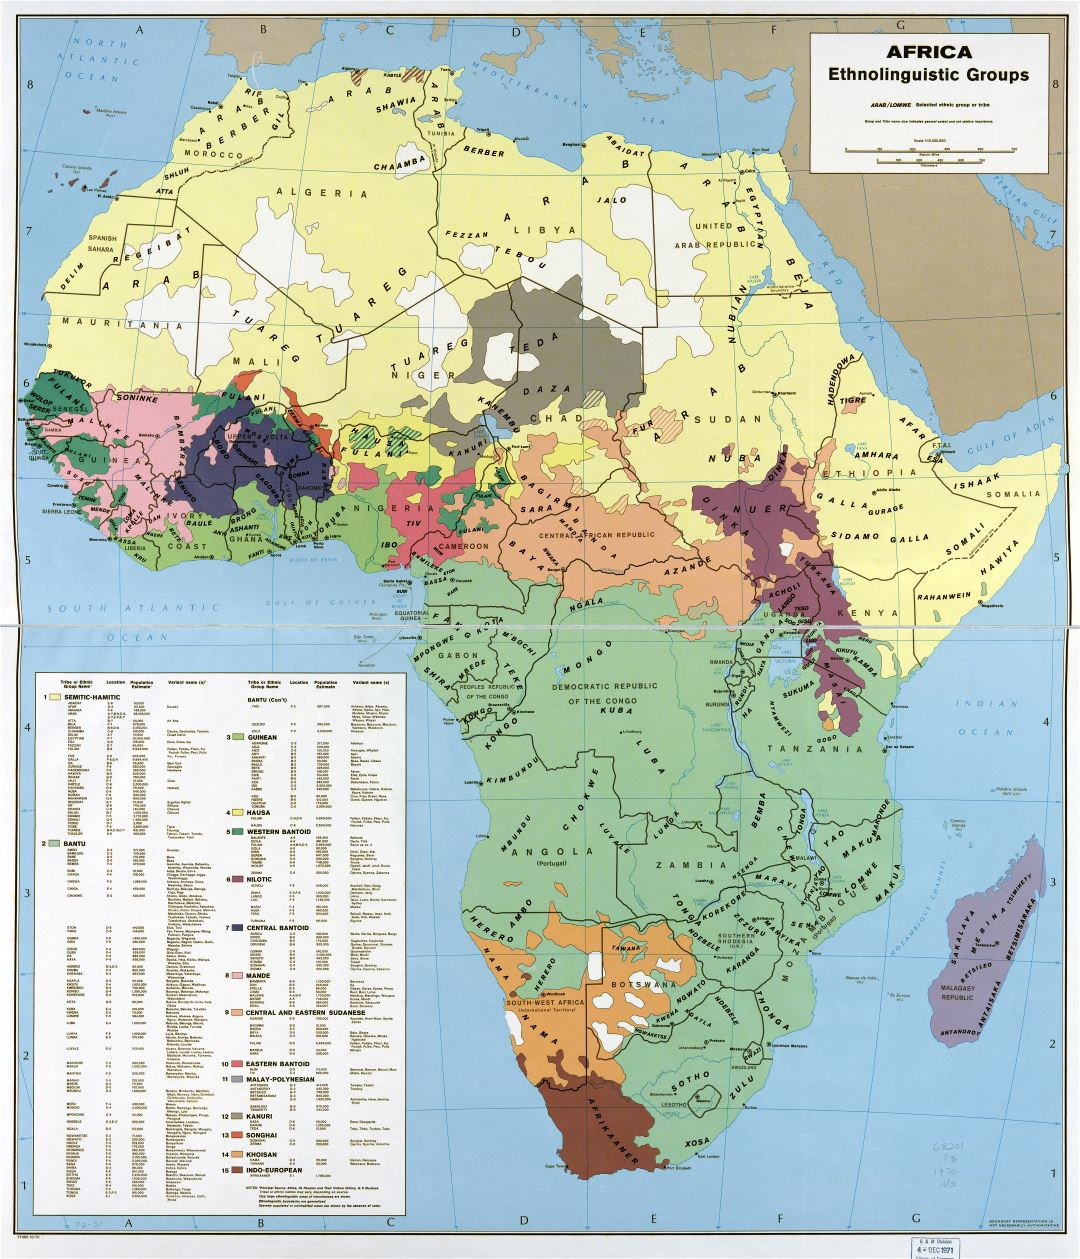 Large scale detail Africa - Ethnolinguistic groups map - 1970